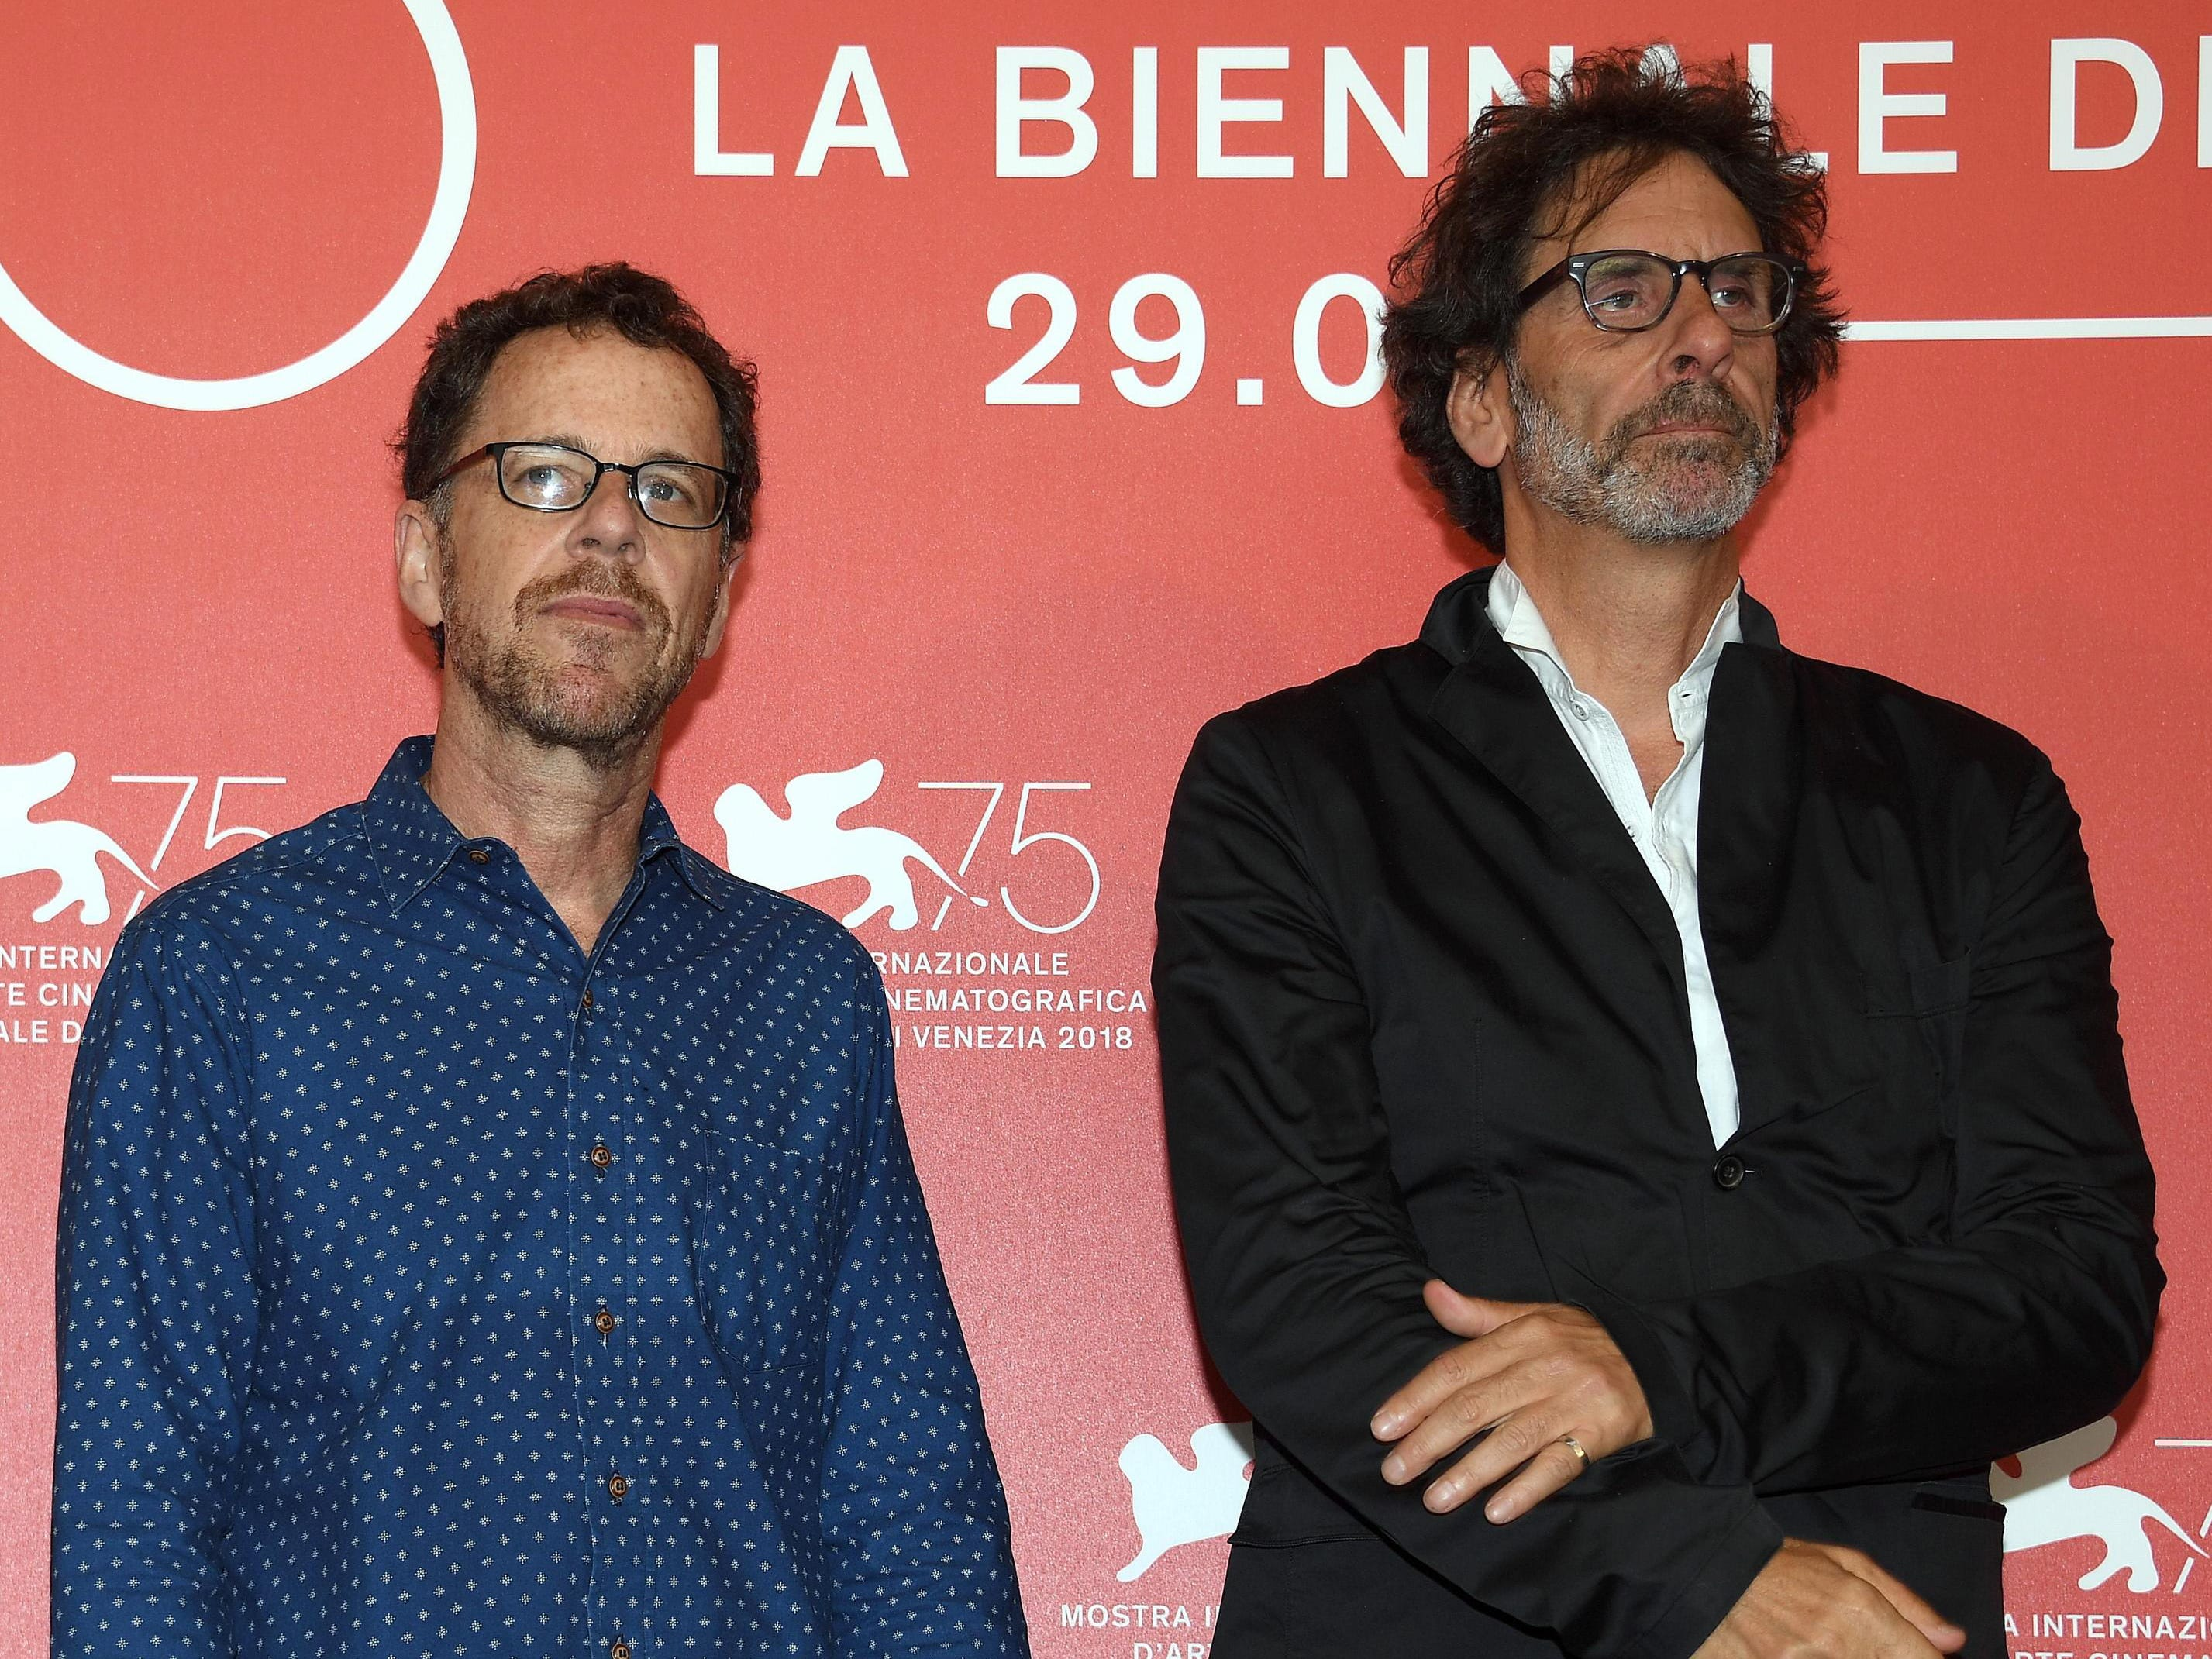 """Directors Joel (right) and Ethan Coen, pose during a photocall for their Netflix movie """"The Ballad of Buster Scruggs"""" during the 75th annual Venice International Film Festival, in Venice, Italy, 31 August 2018. The movie is presented in the official competition 'Venezia 75' at the festival running from 29 August to 08 September 2018.  EPA-EFE/CLAUDIO ONORATI"""